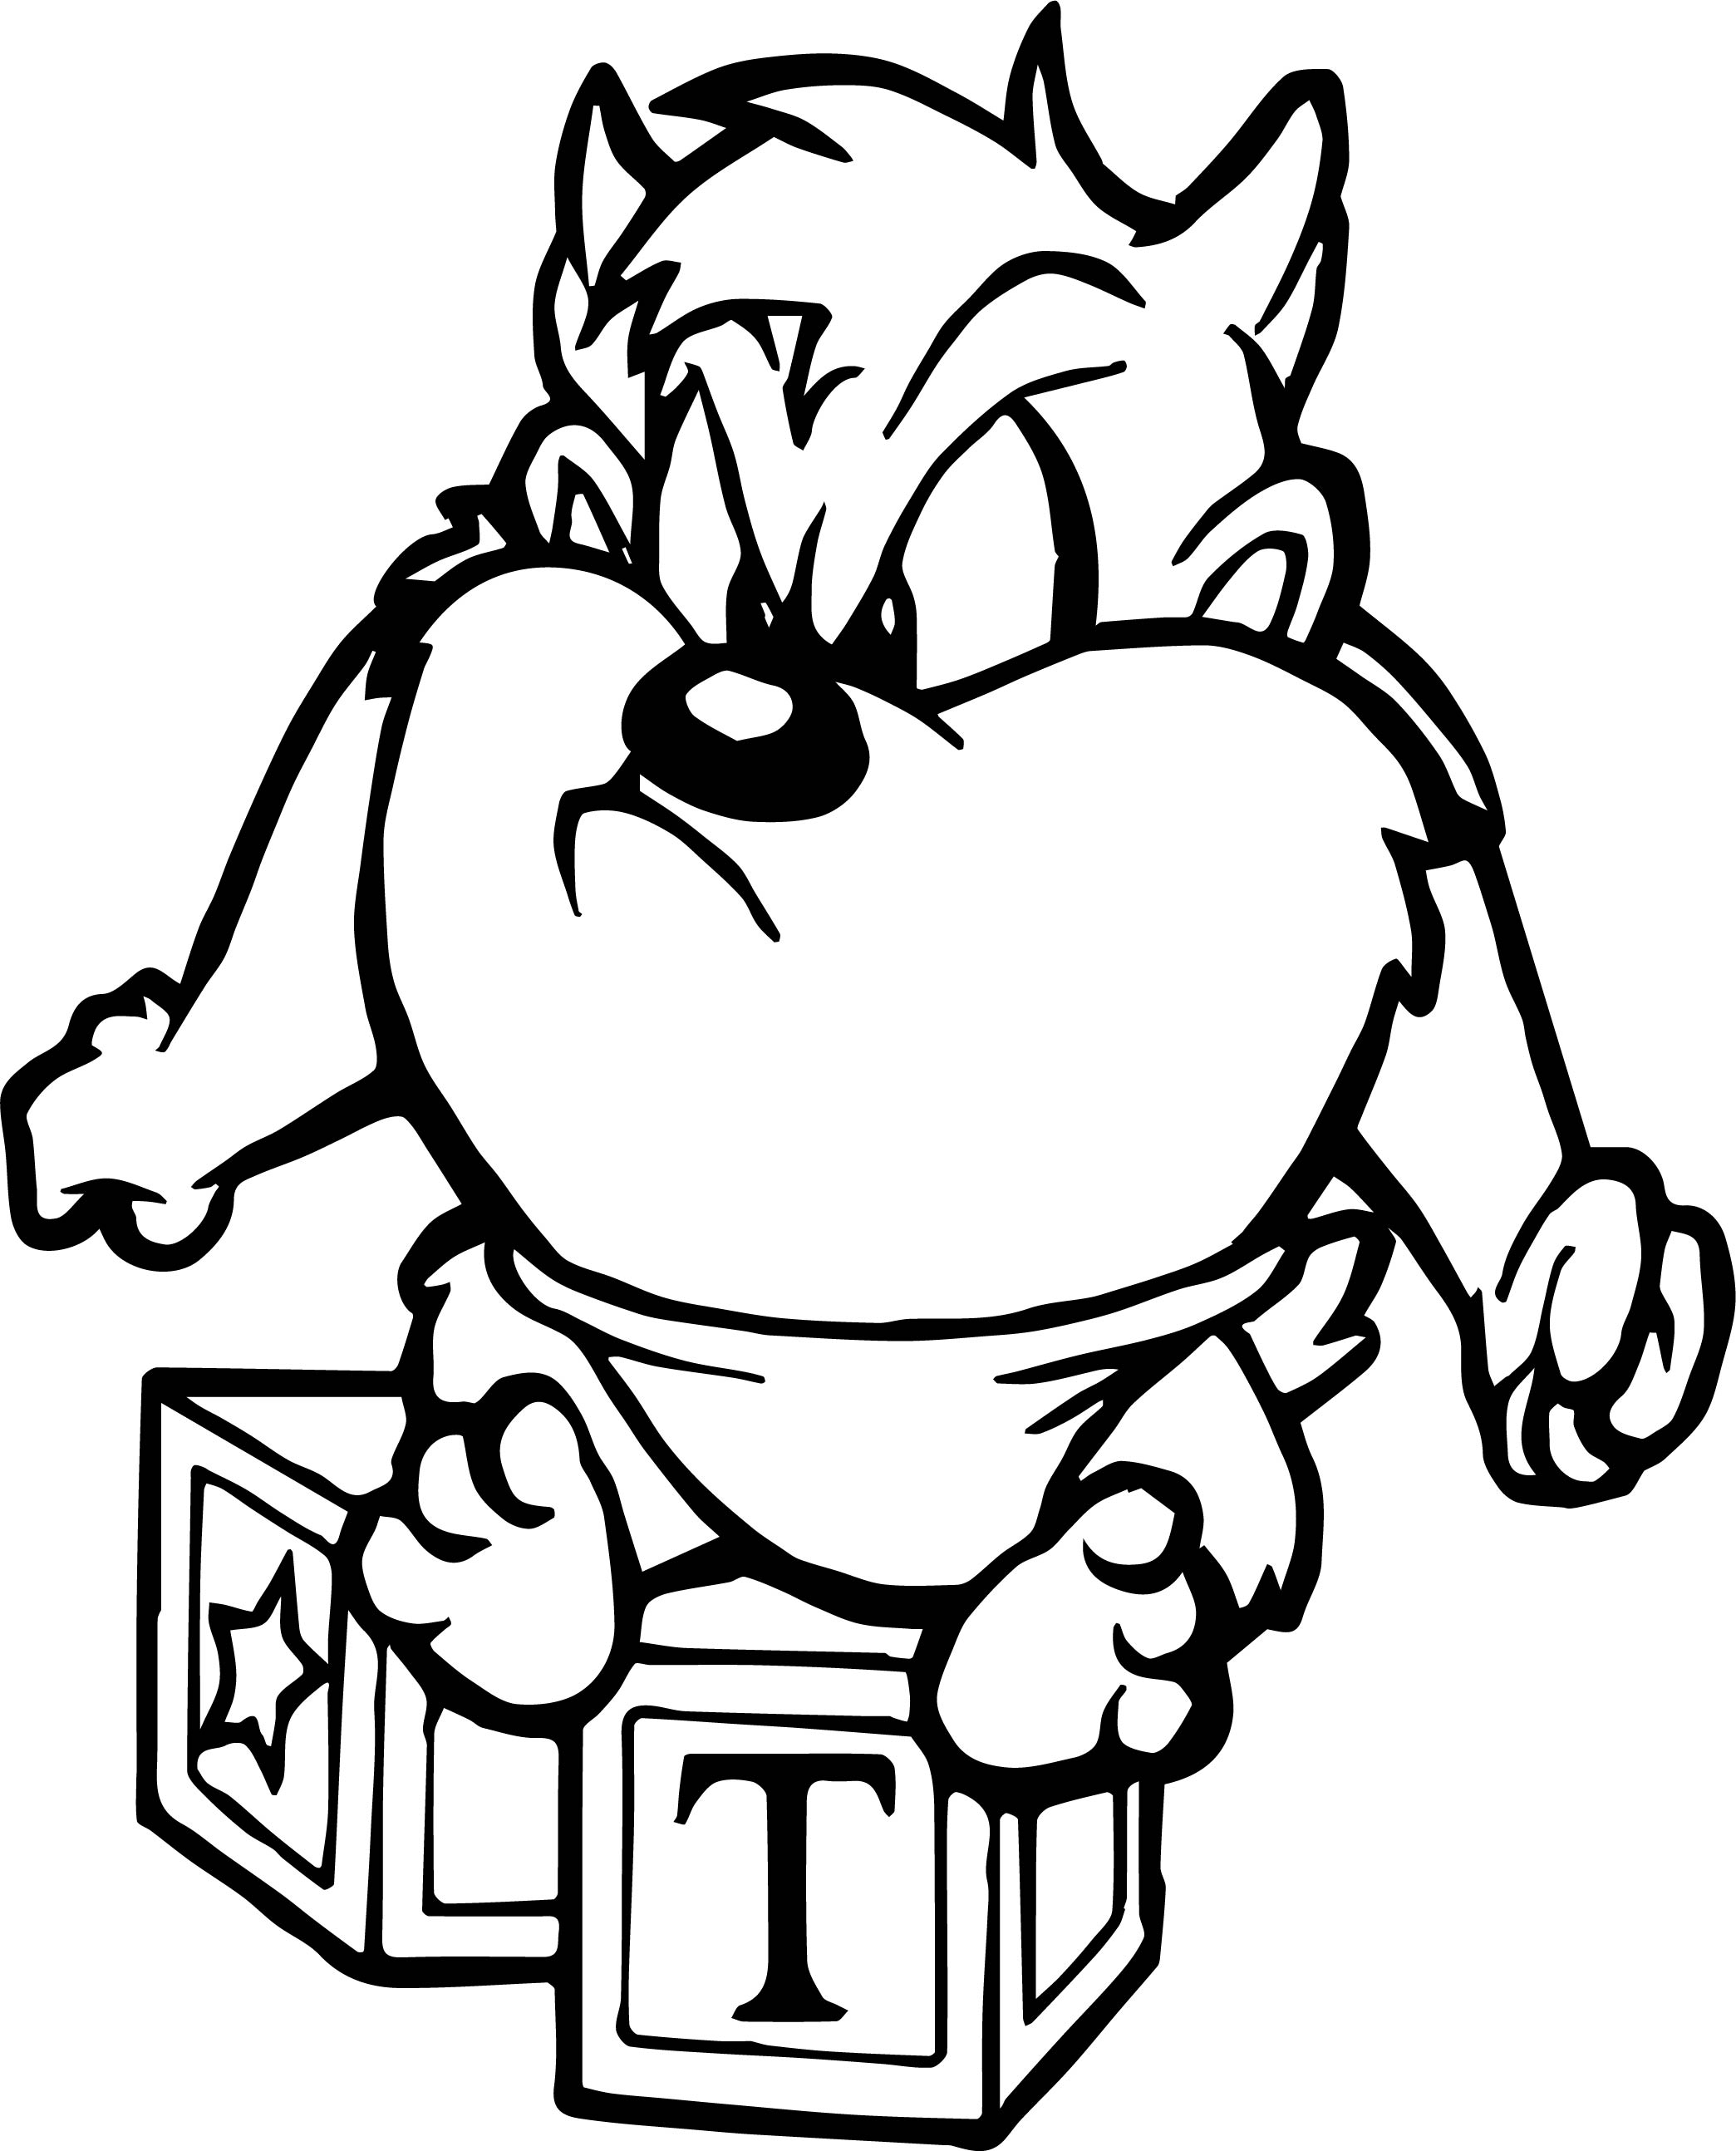 Looney tunes baby tasmania coloring page for Baby looney tunes taz coloring pages